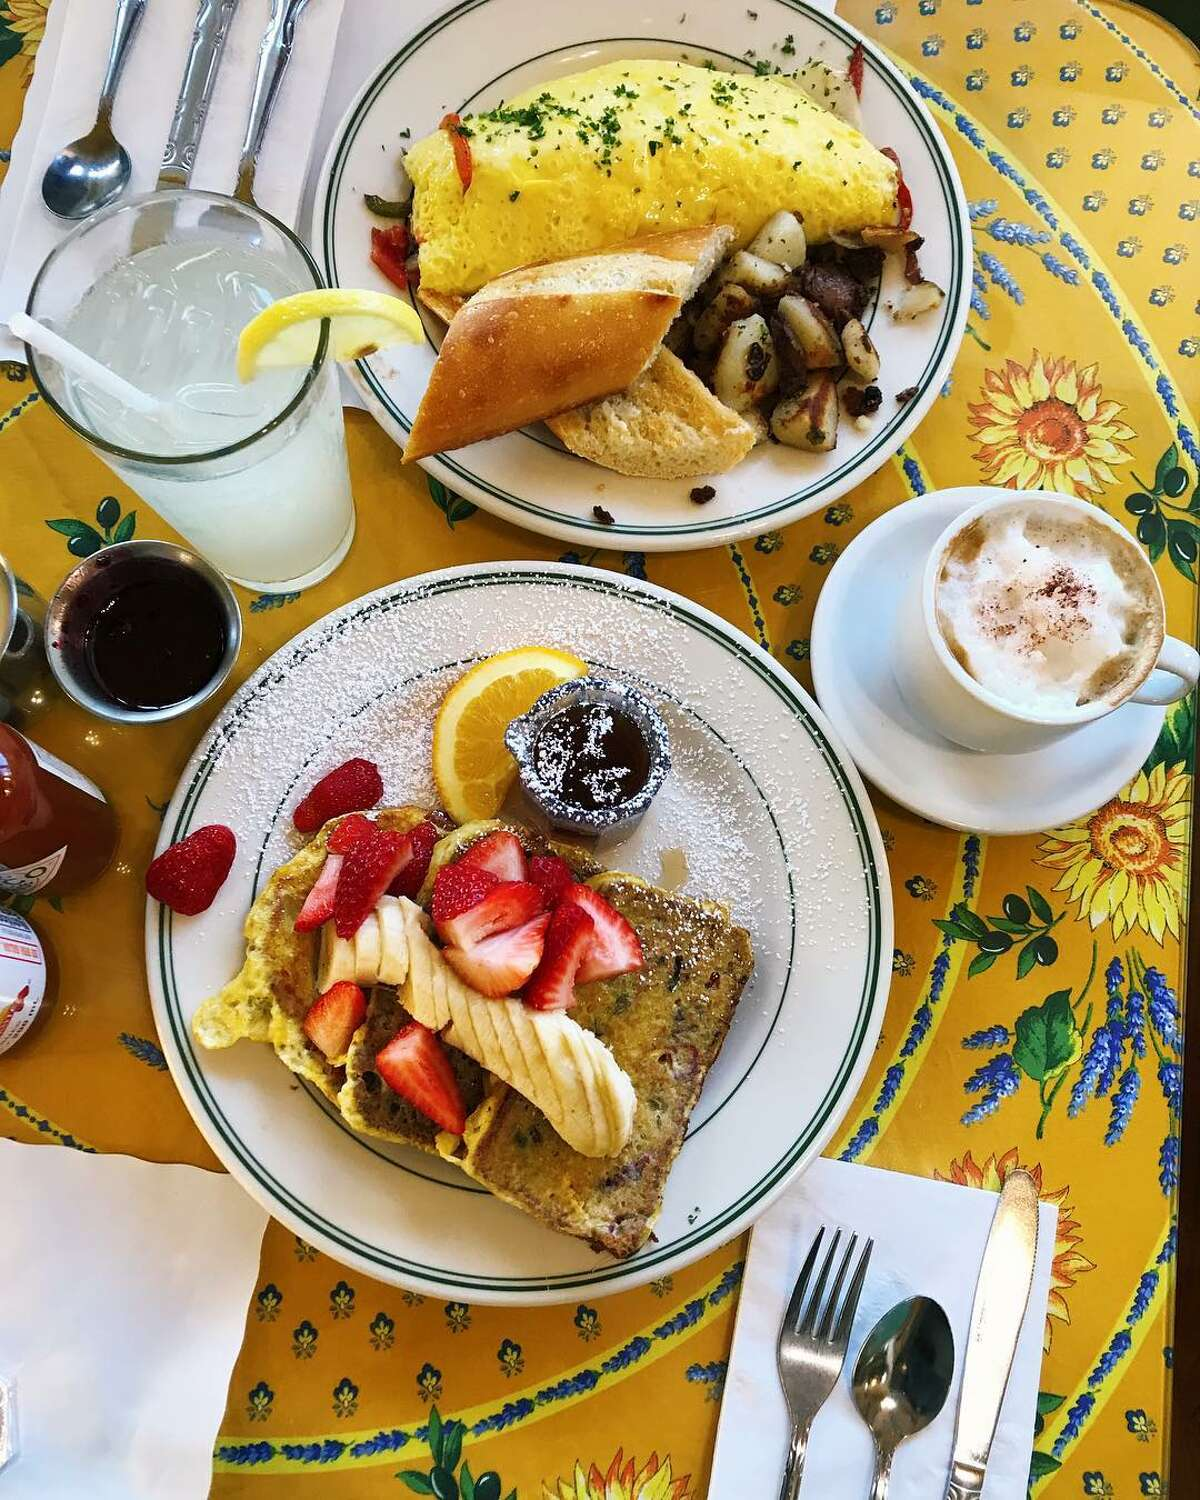 Most Instagrammed San Francisco restaurants in 2017 10. Mama's on Washington Square